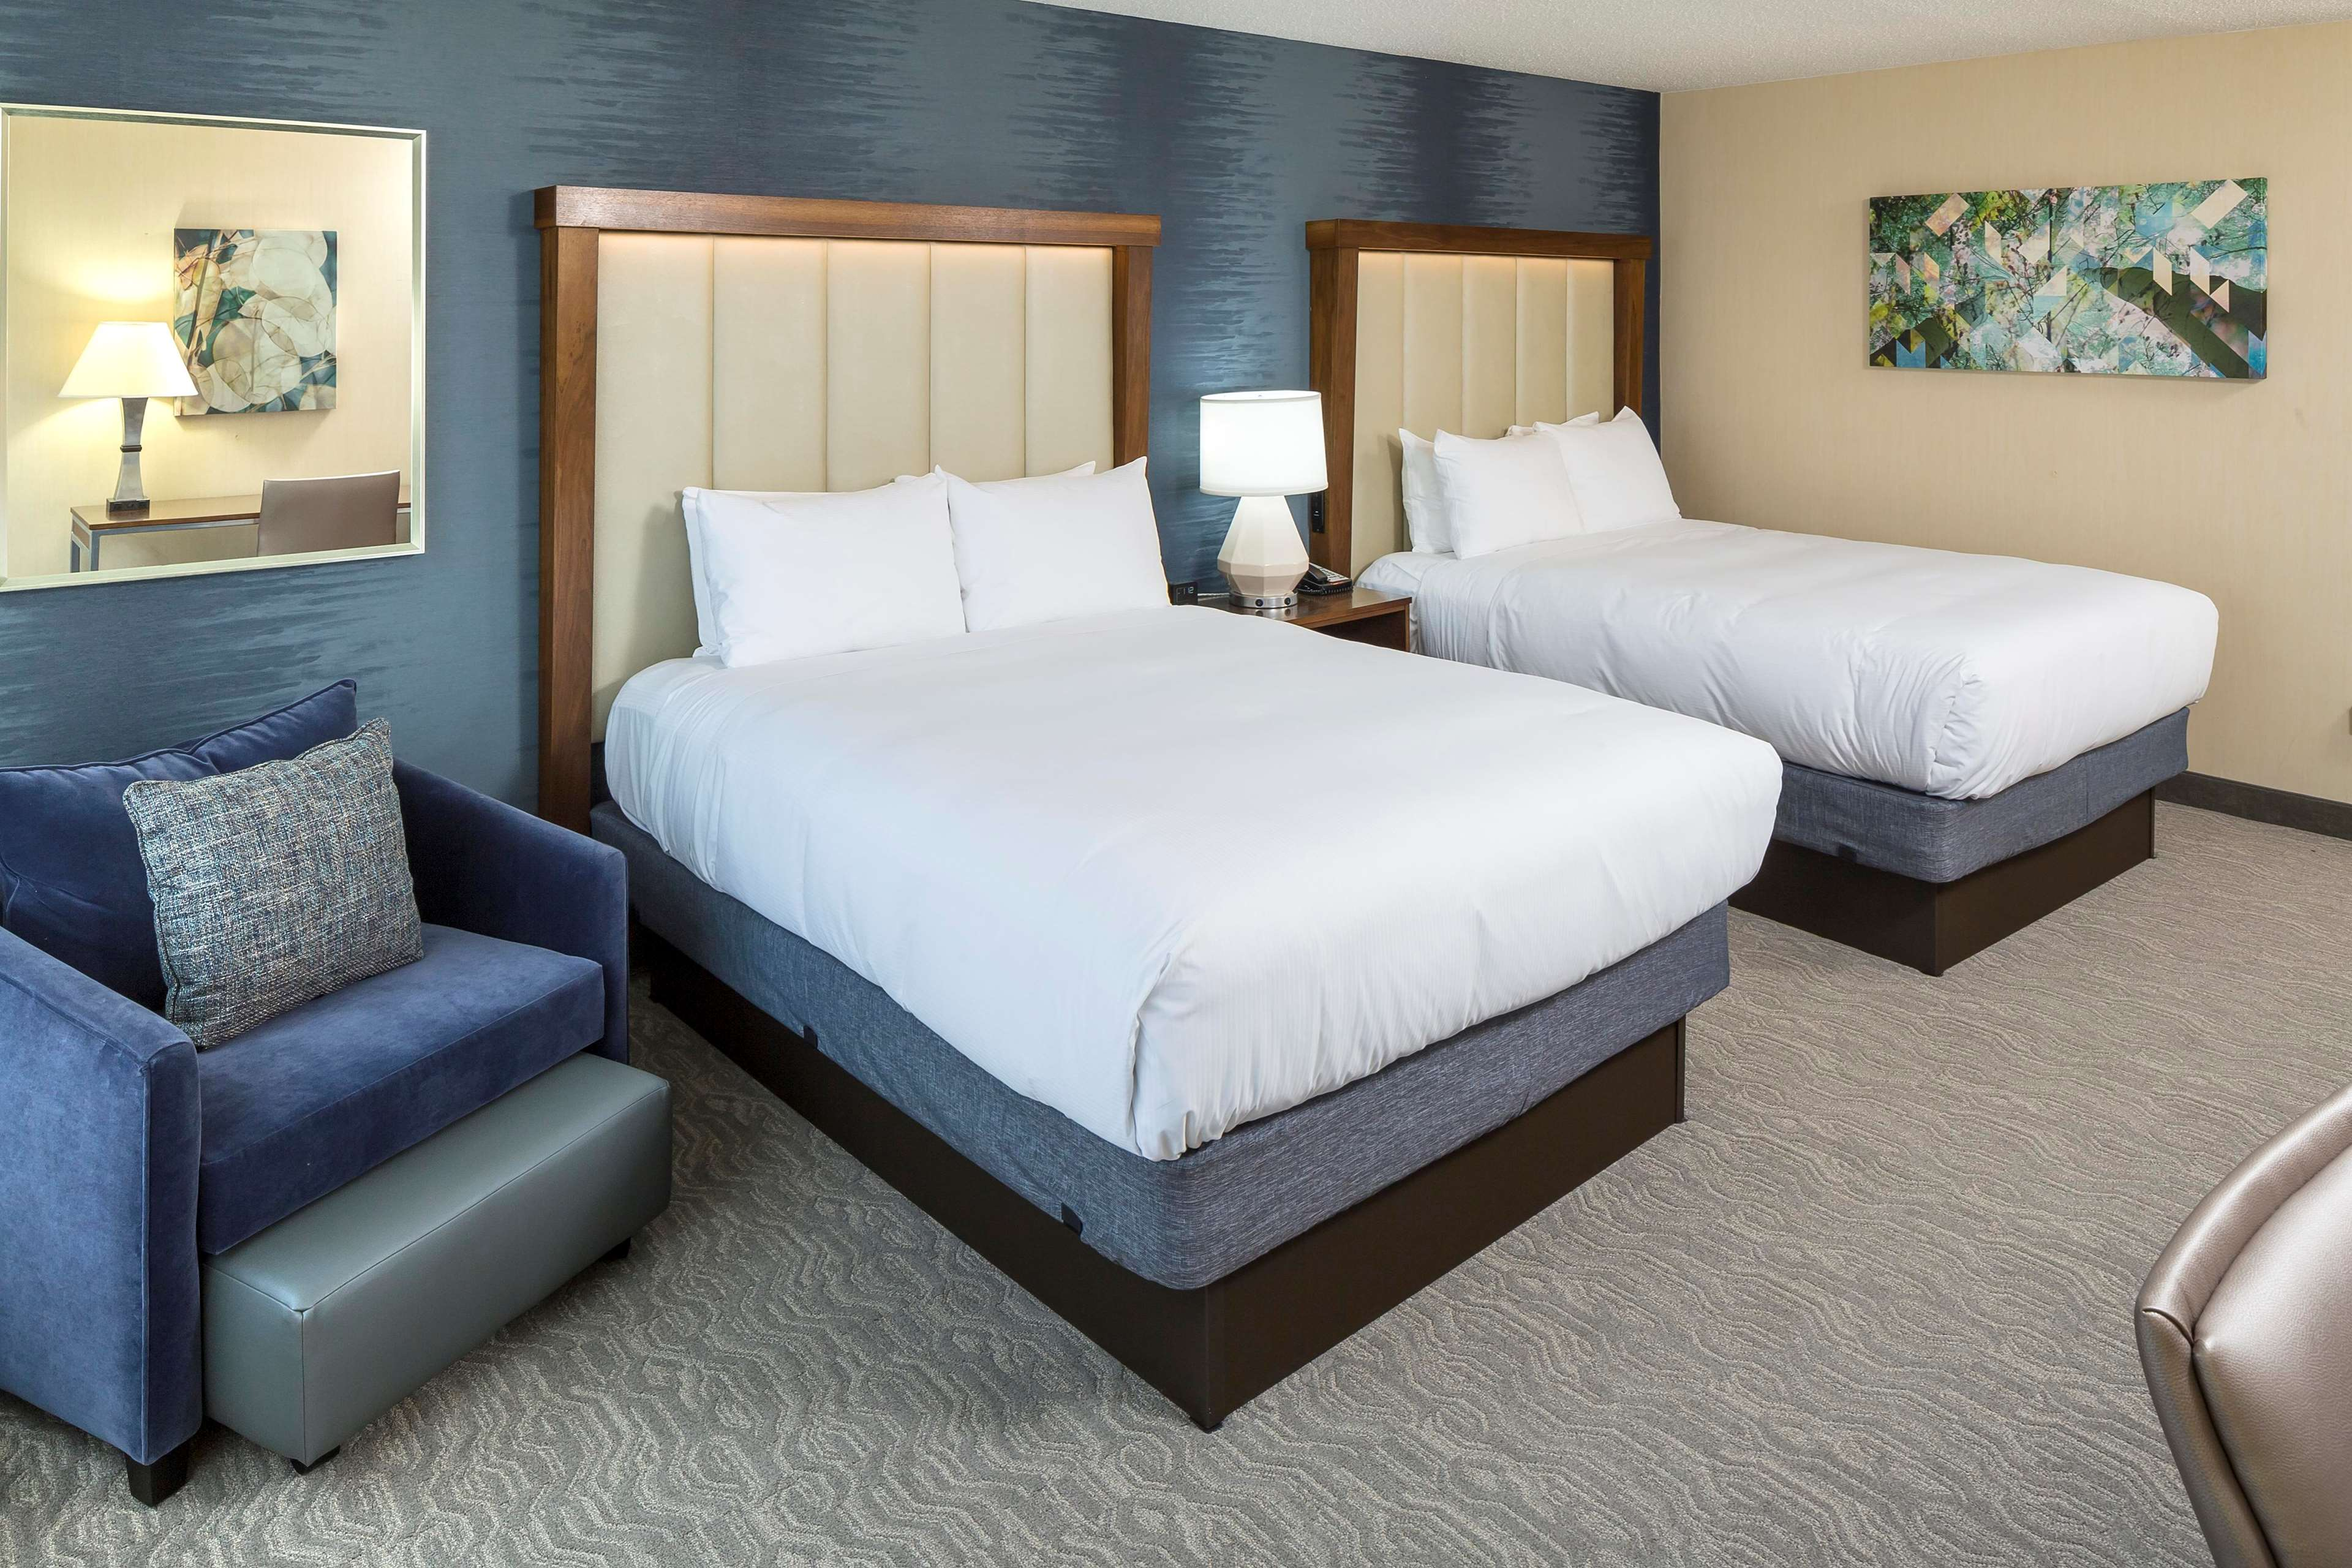 DoubleTree by Hilton Boston - Andover image 46